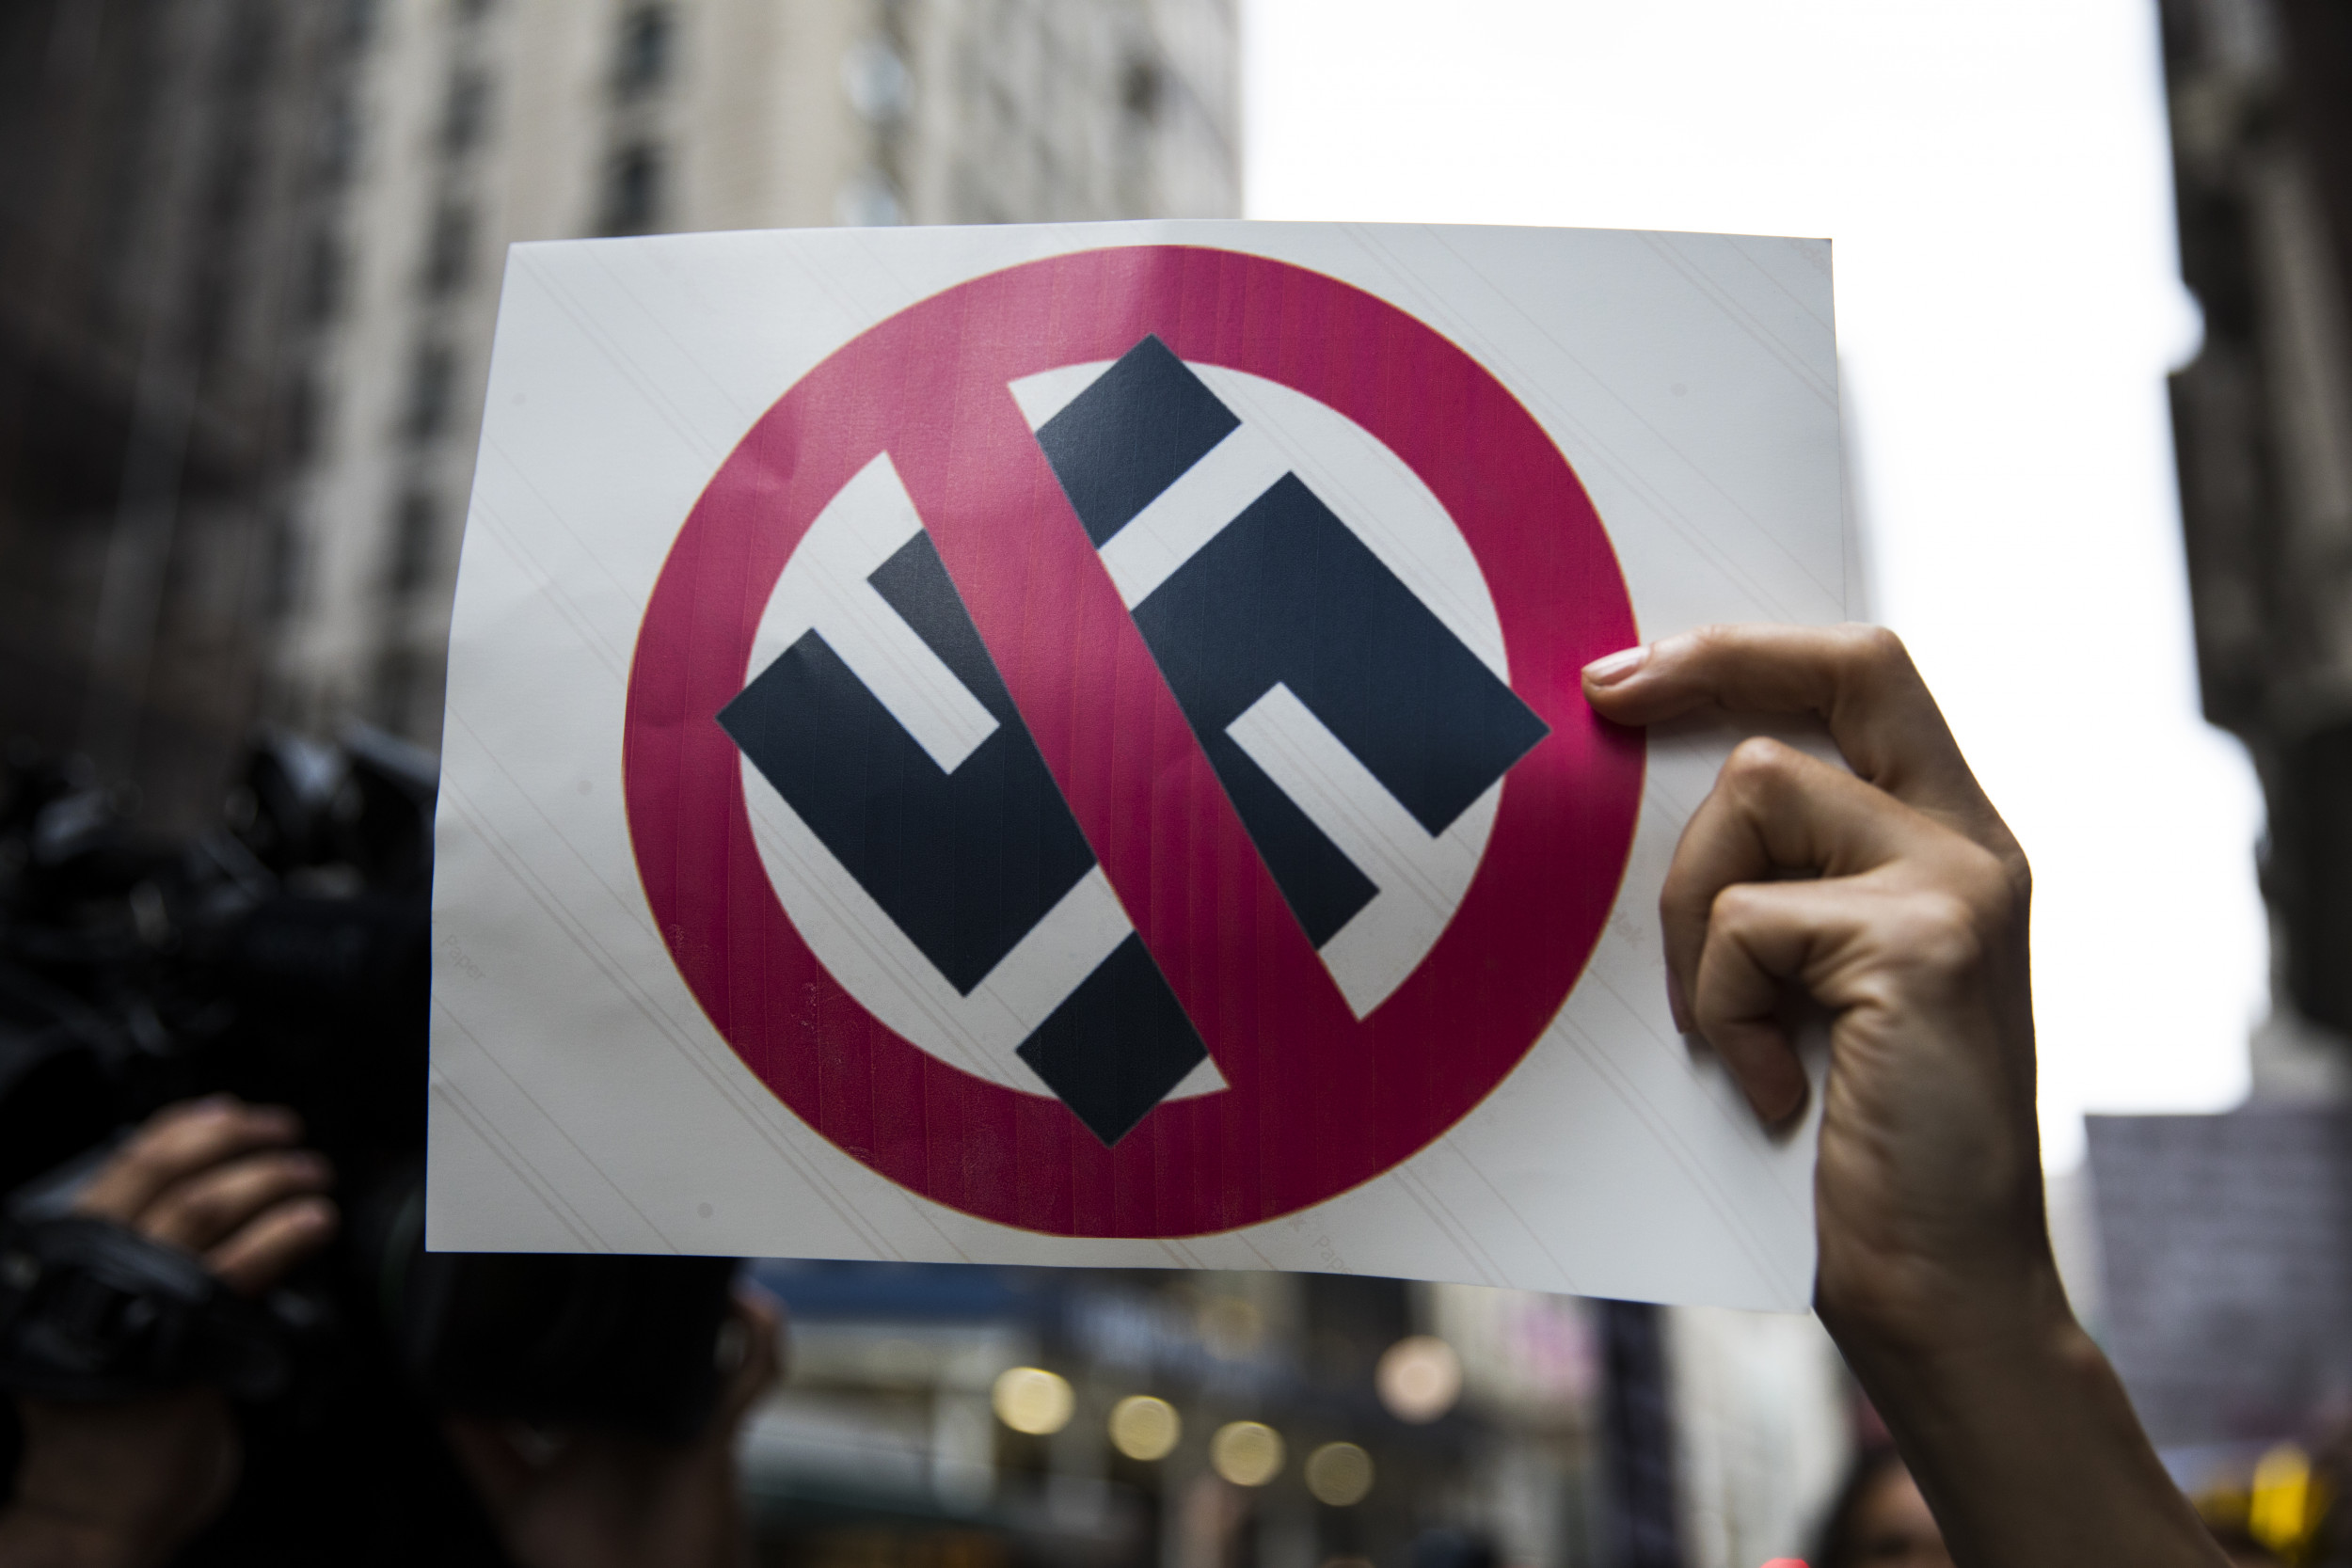 'Nazi political applications' are being handed out in Indiana